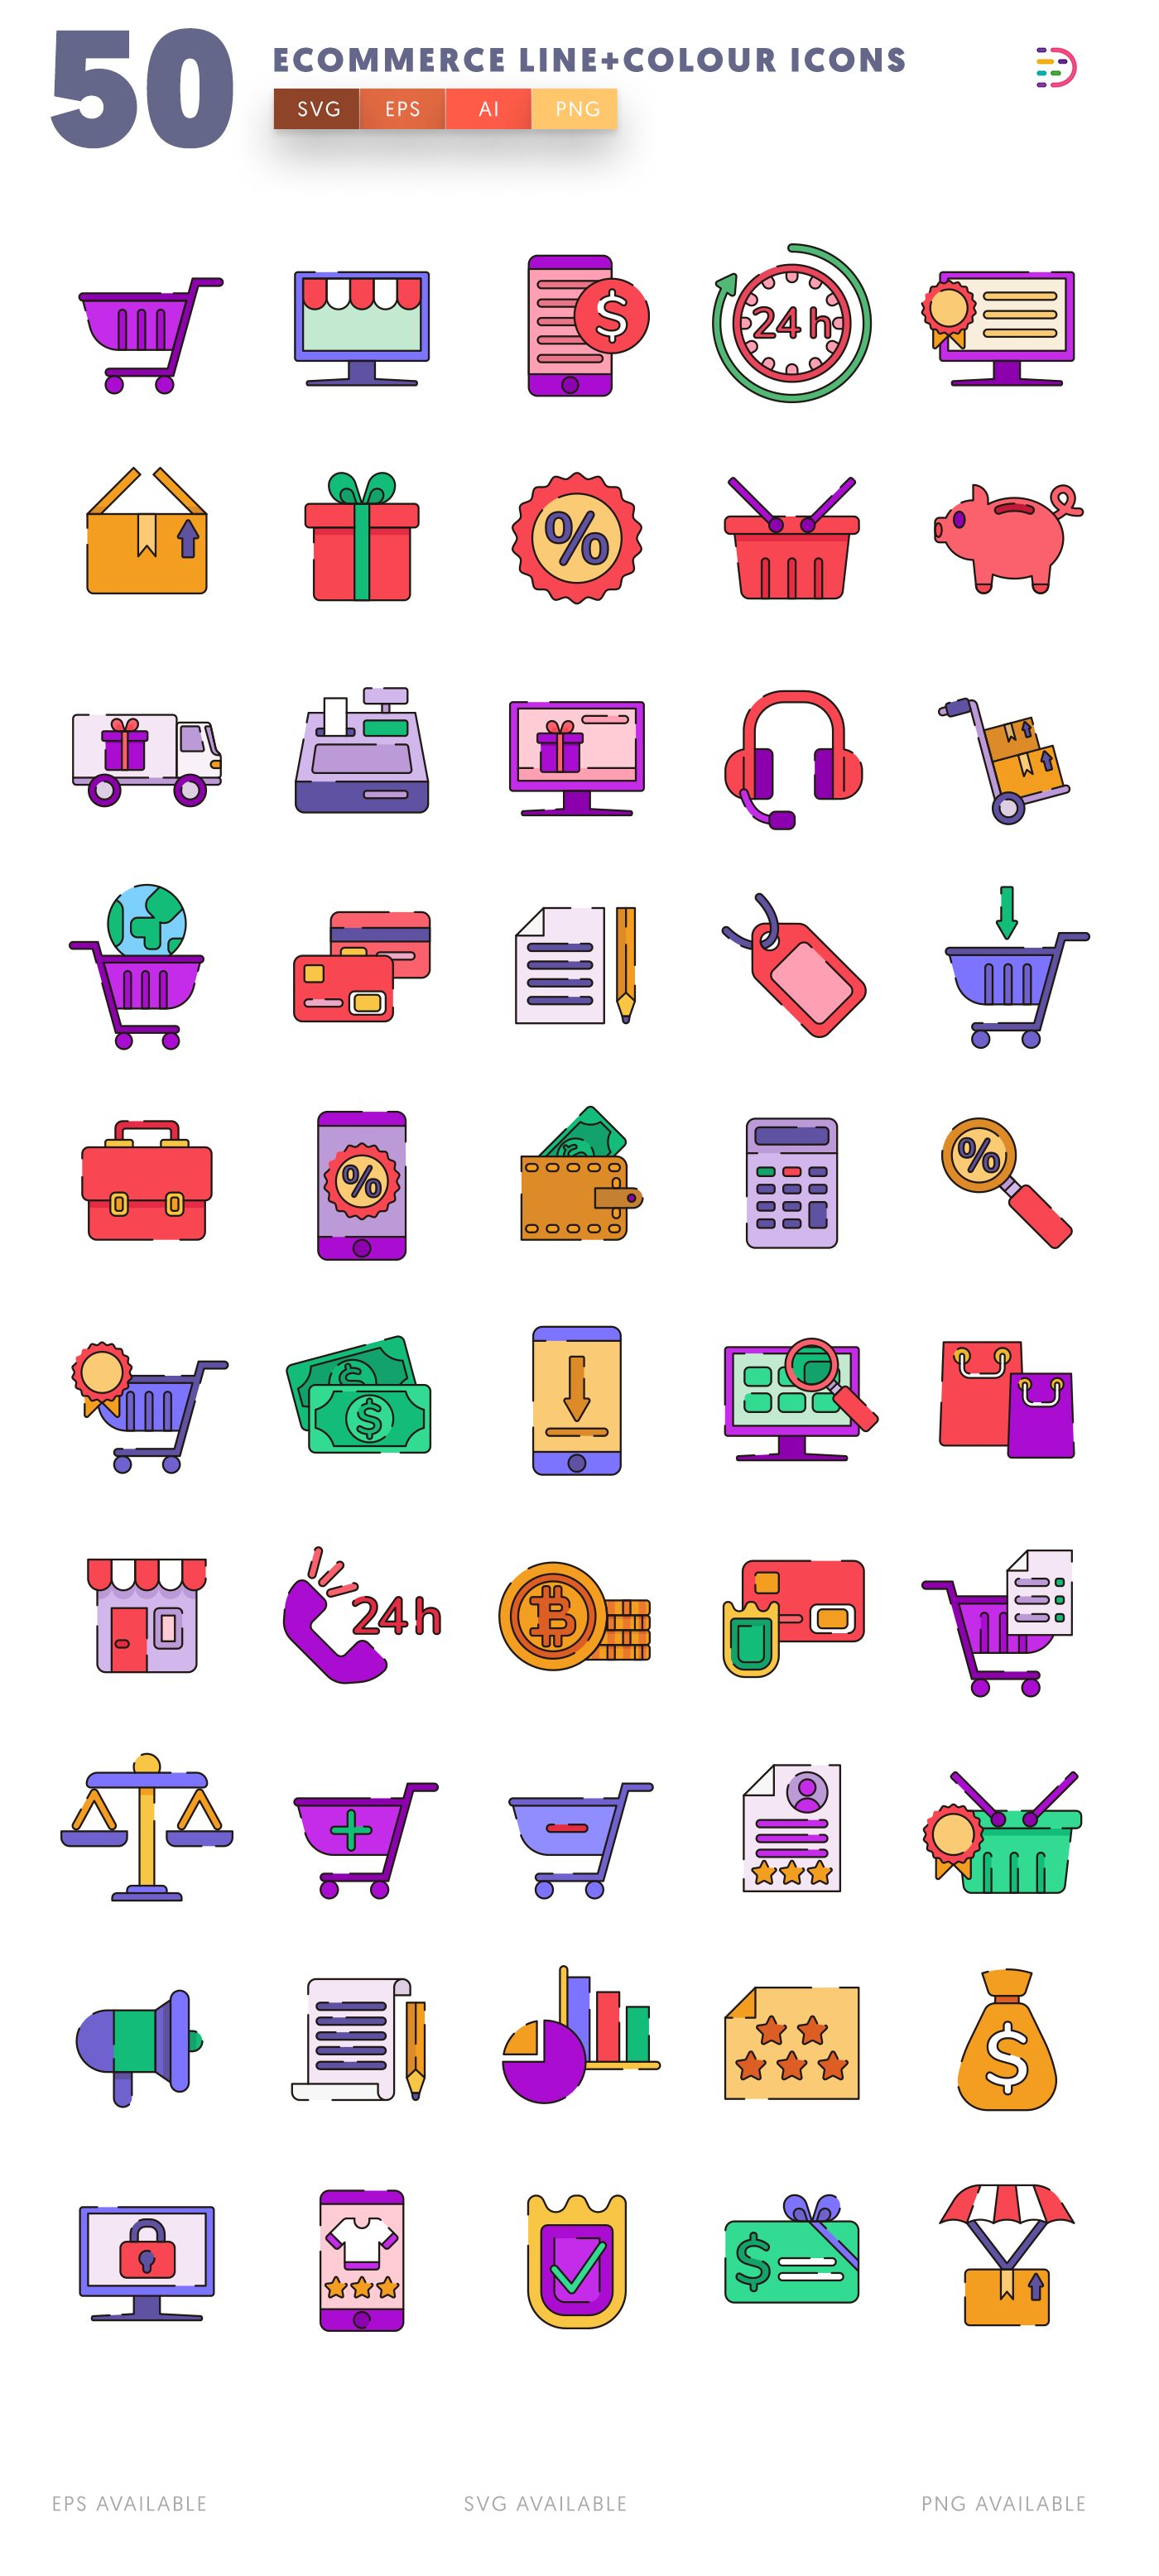 Ecommerce Line+Colour icon pack